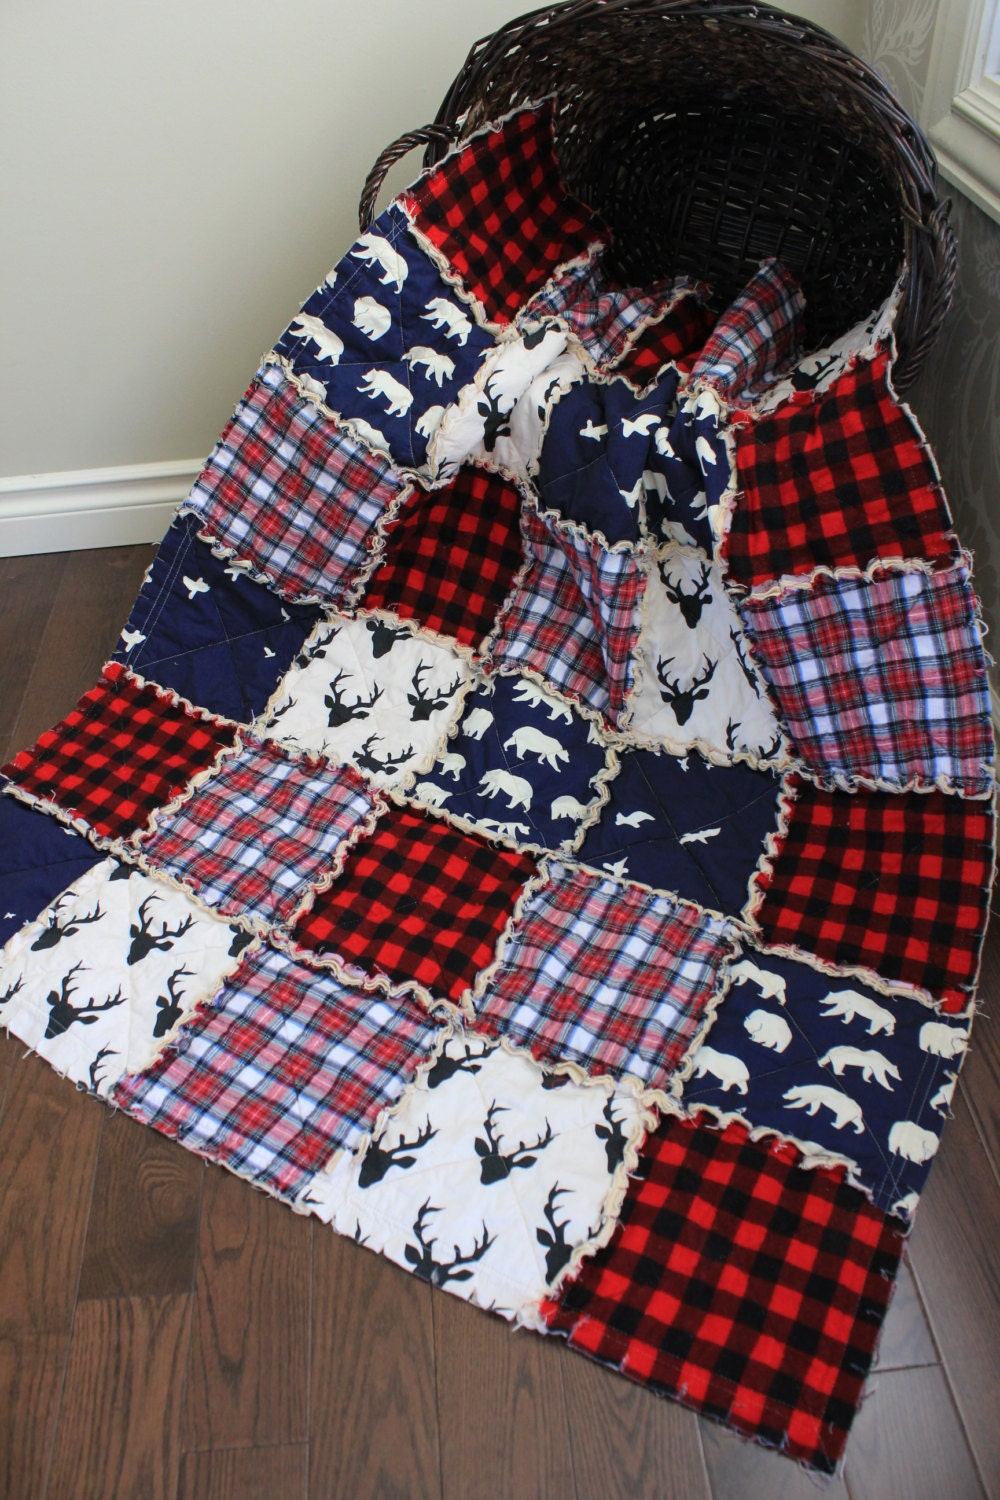 Baby Rag Quilt Baby Crib Quilt Plaid Quilt Deer Navy And